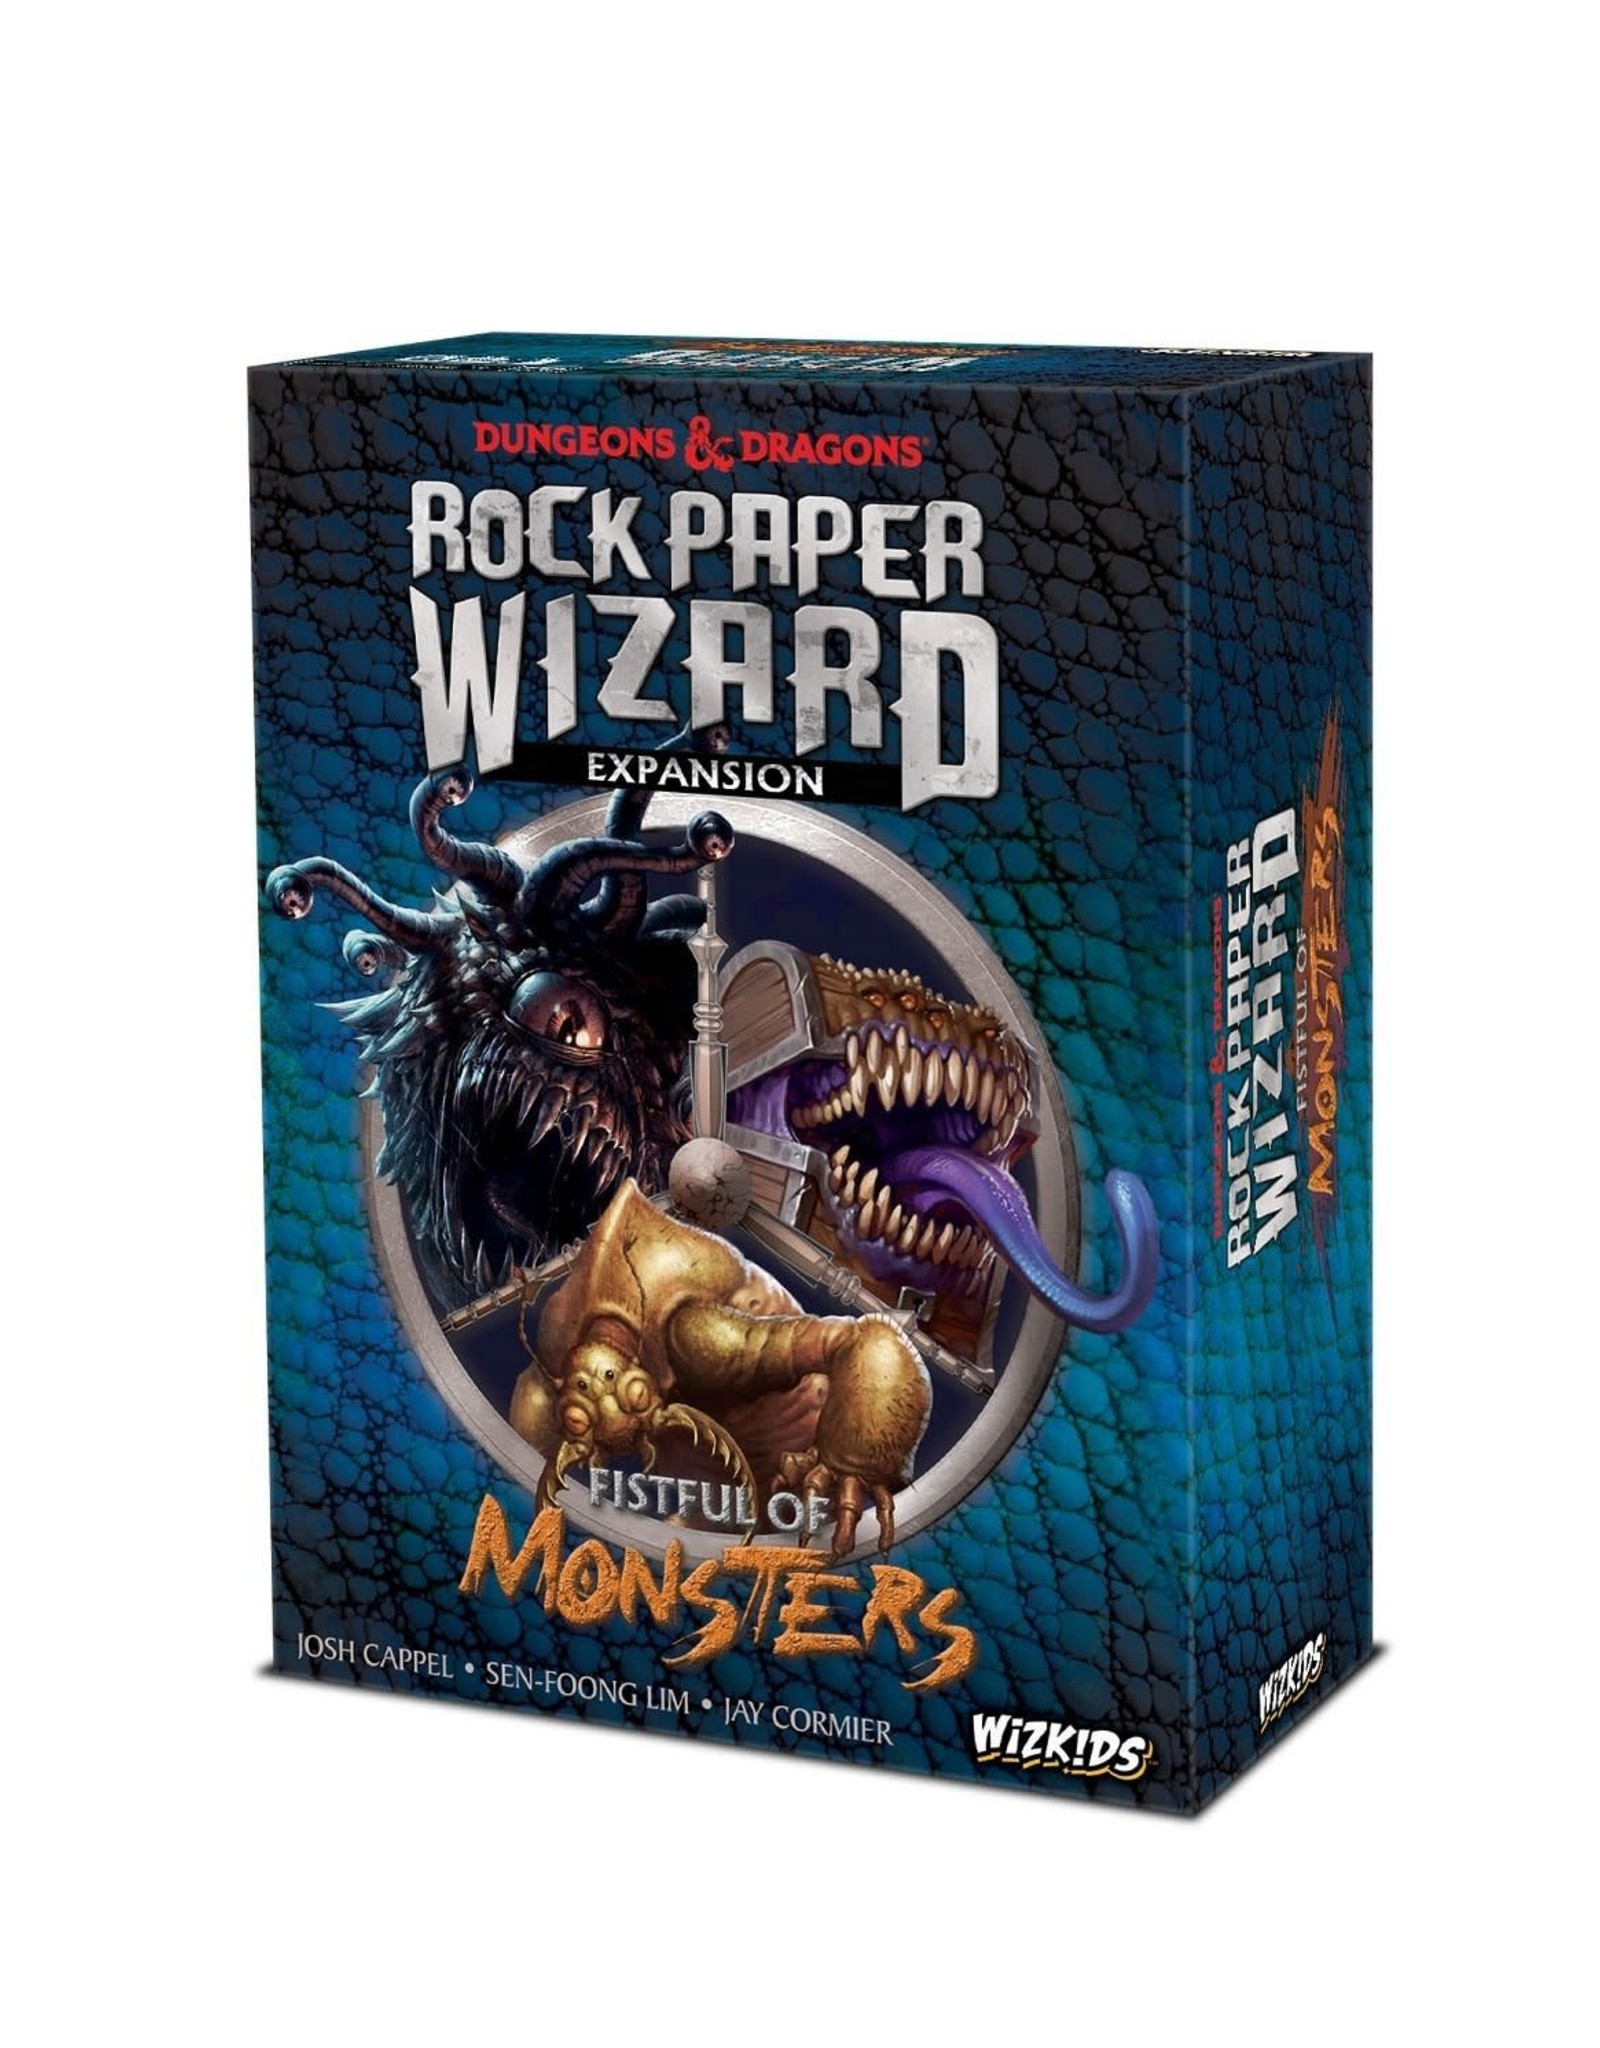 WizKids Dungeons & Dragons: Rock, Paper, Wizard - Fistful of Monsters